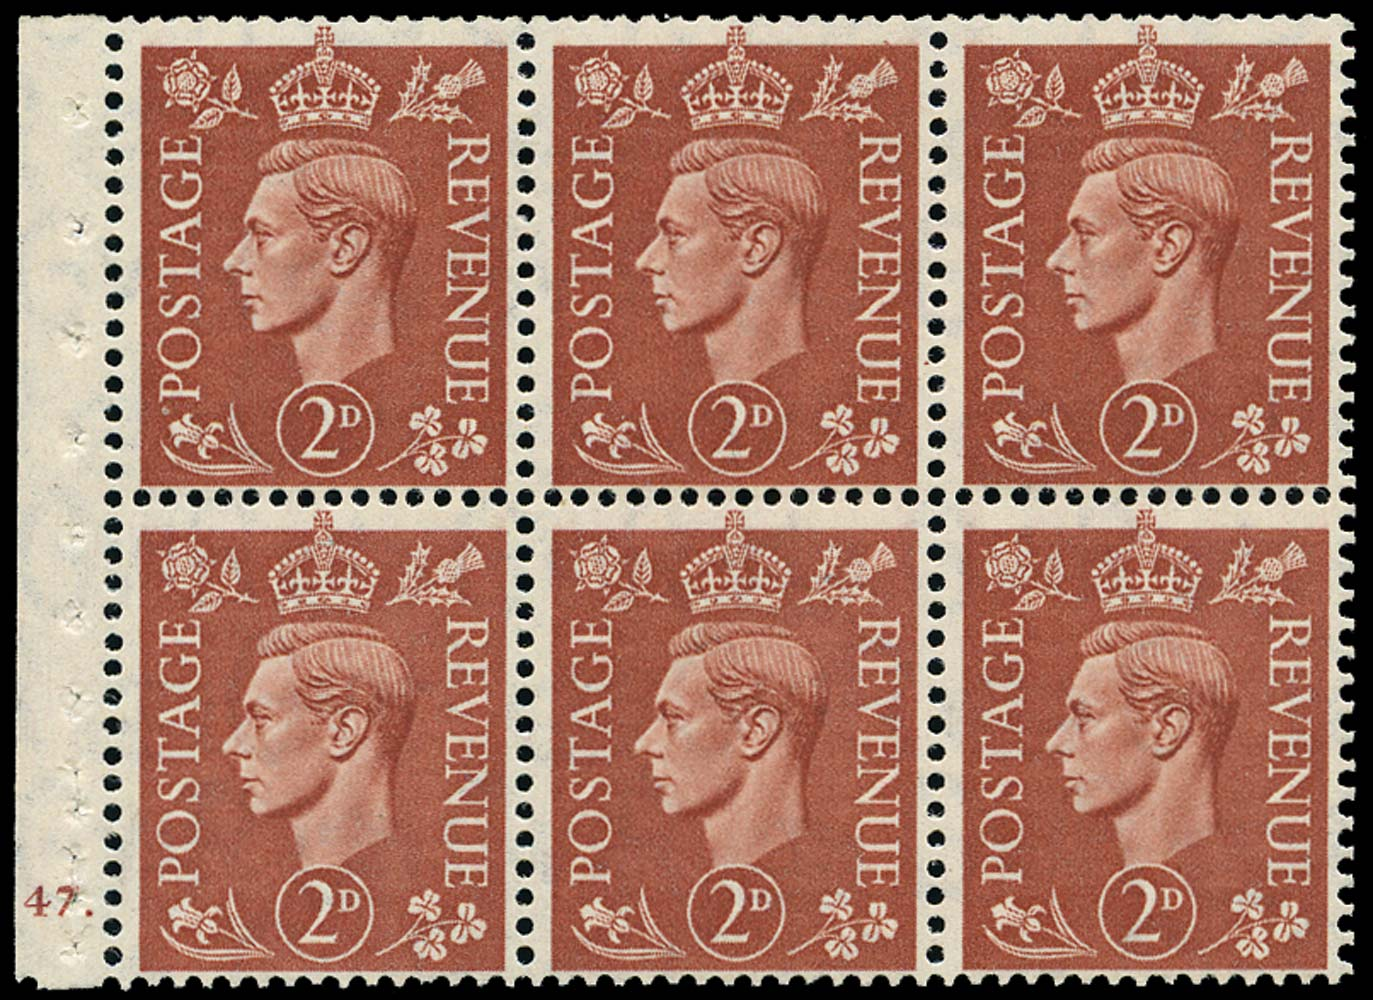 GB 1951  SG506l Booklet pane of six, U/M